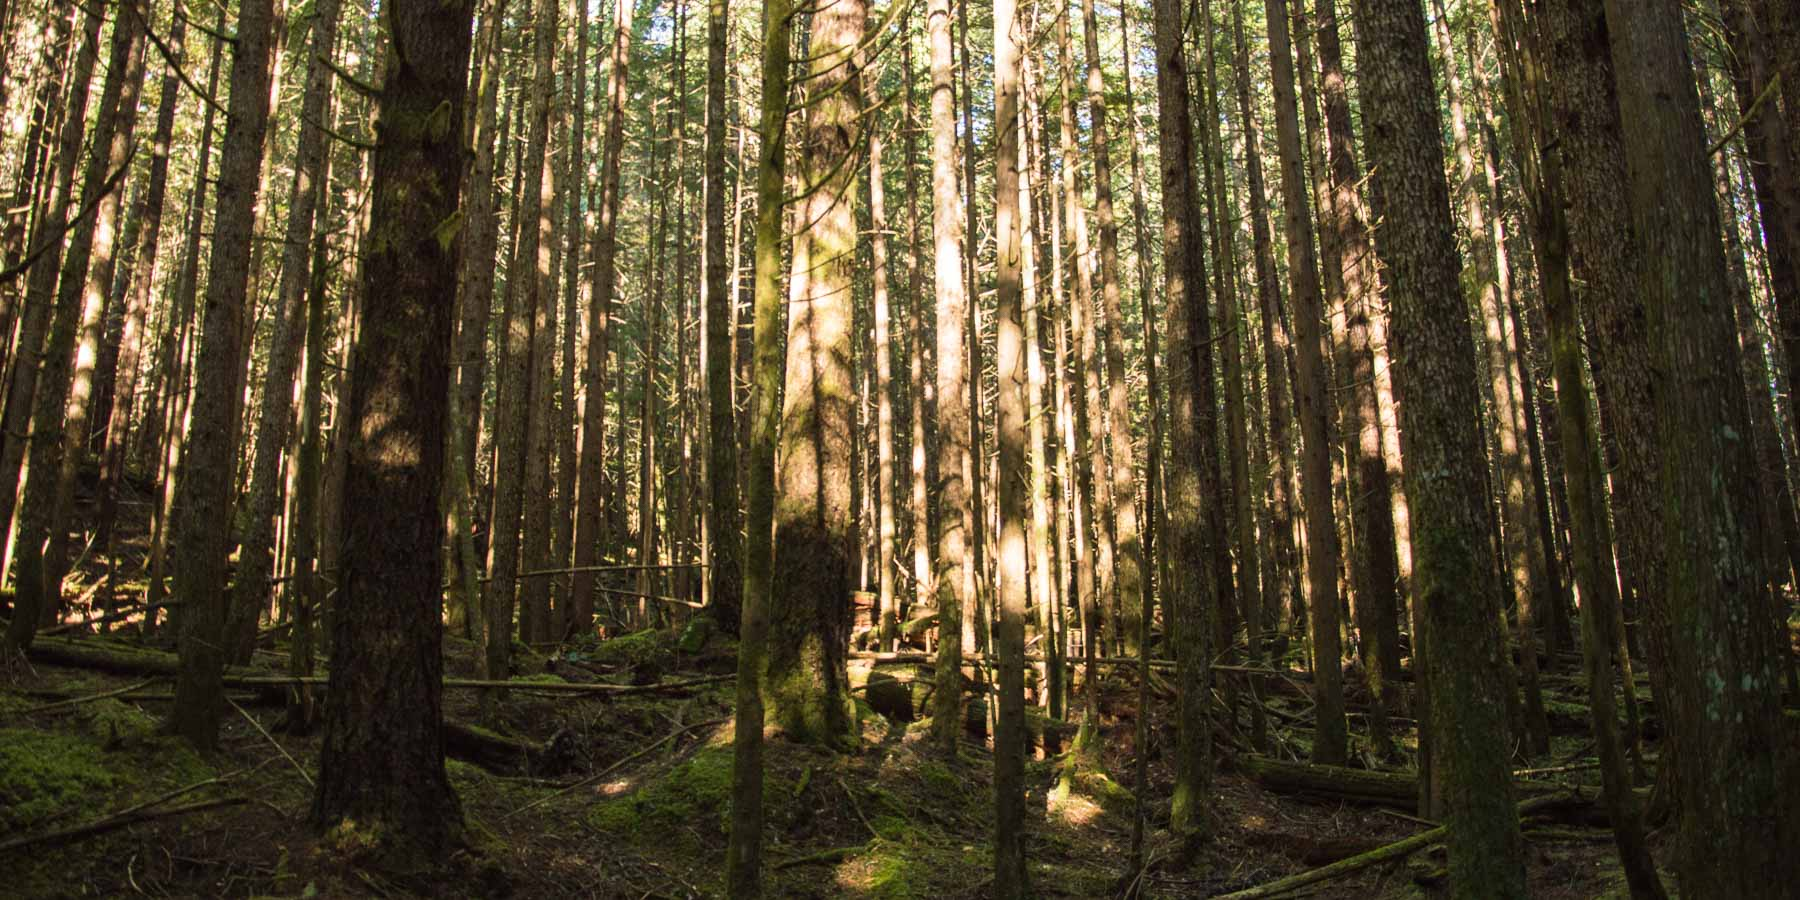 Forest bathing means you notice the light. Here sunlight plays on a forest of pine trees.